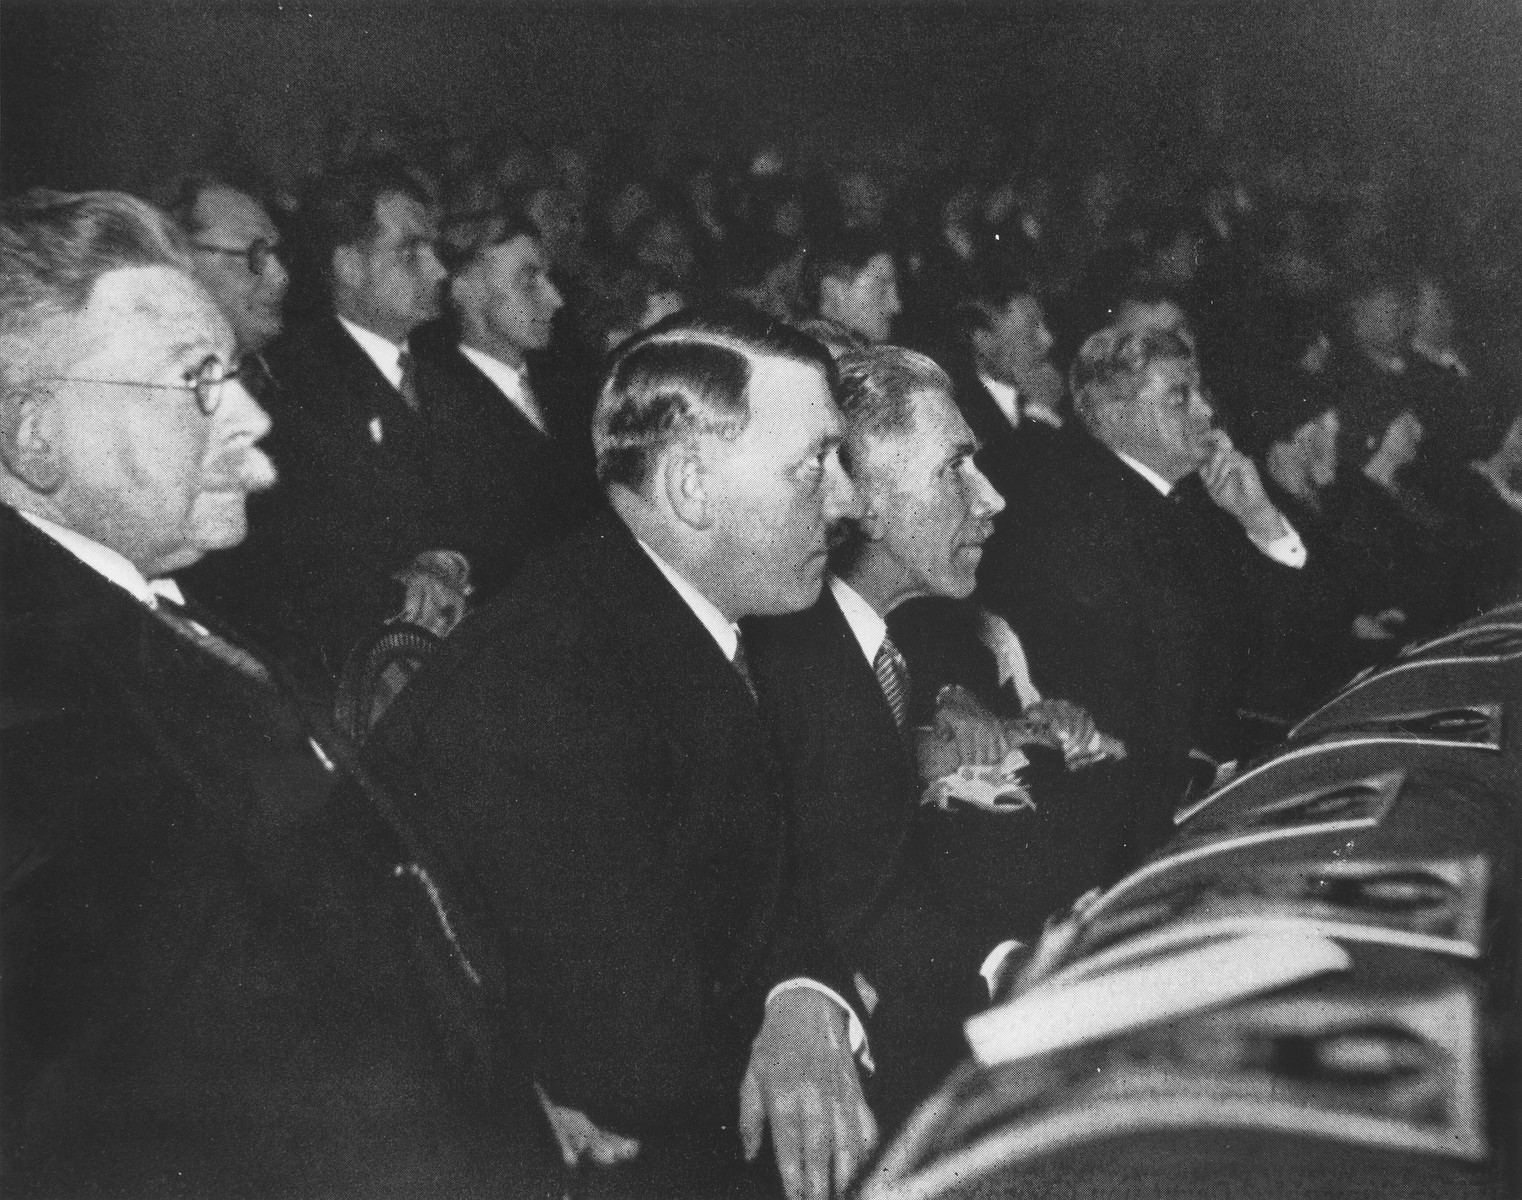 Adolf Hitler attends a session of the Reichstag on the first day of business for his new cabinet.  Pictured in the front row from left to right are: Alfred Hugenberg, Adolf Hitler and Franz von Papen.